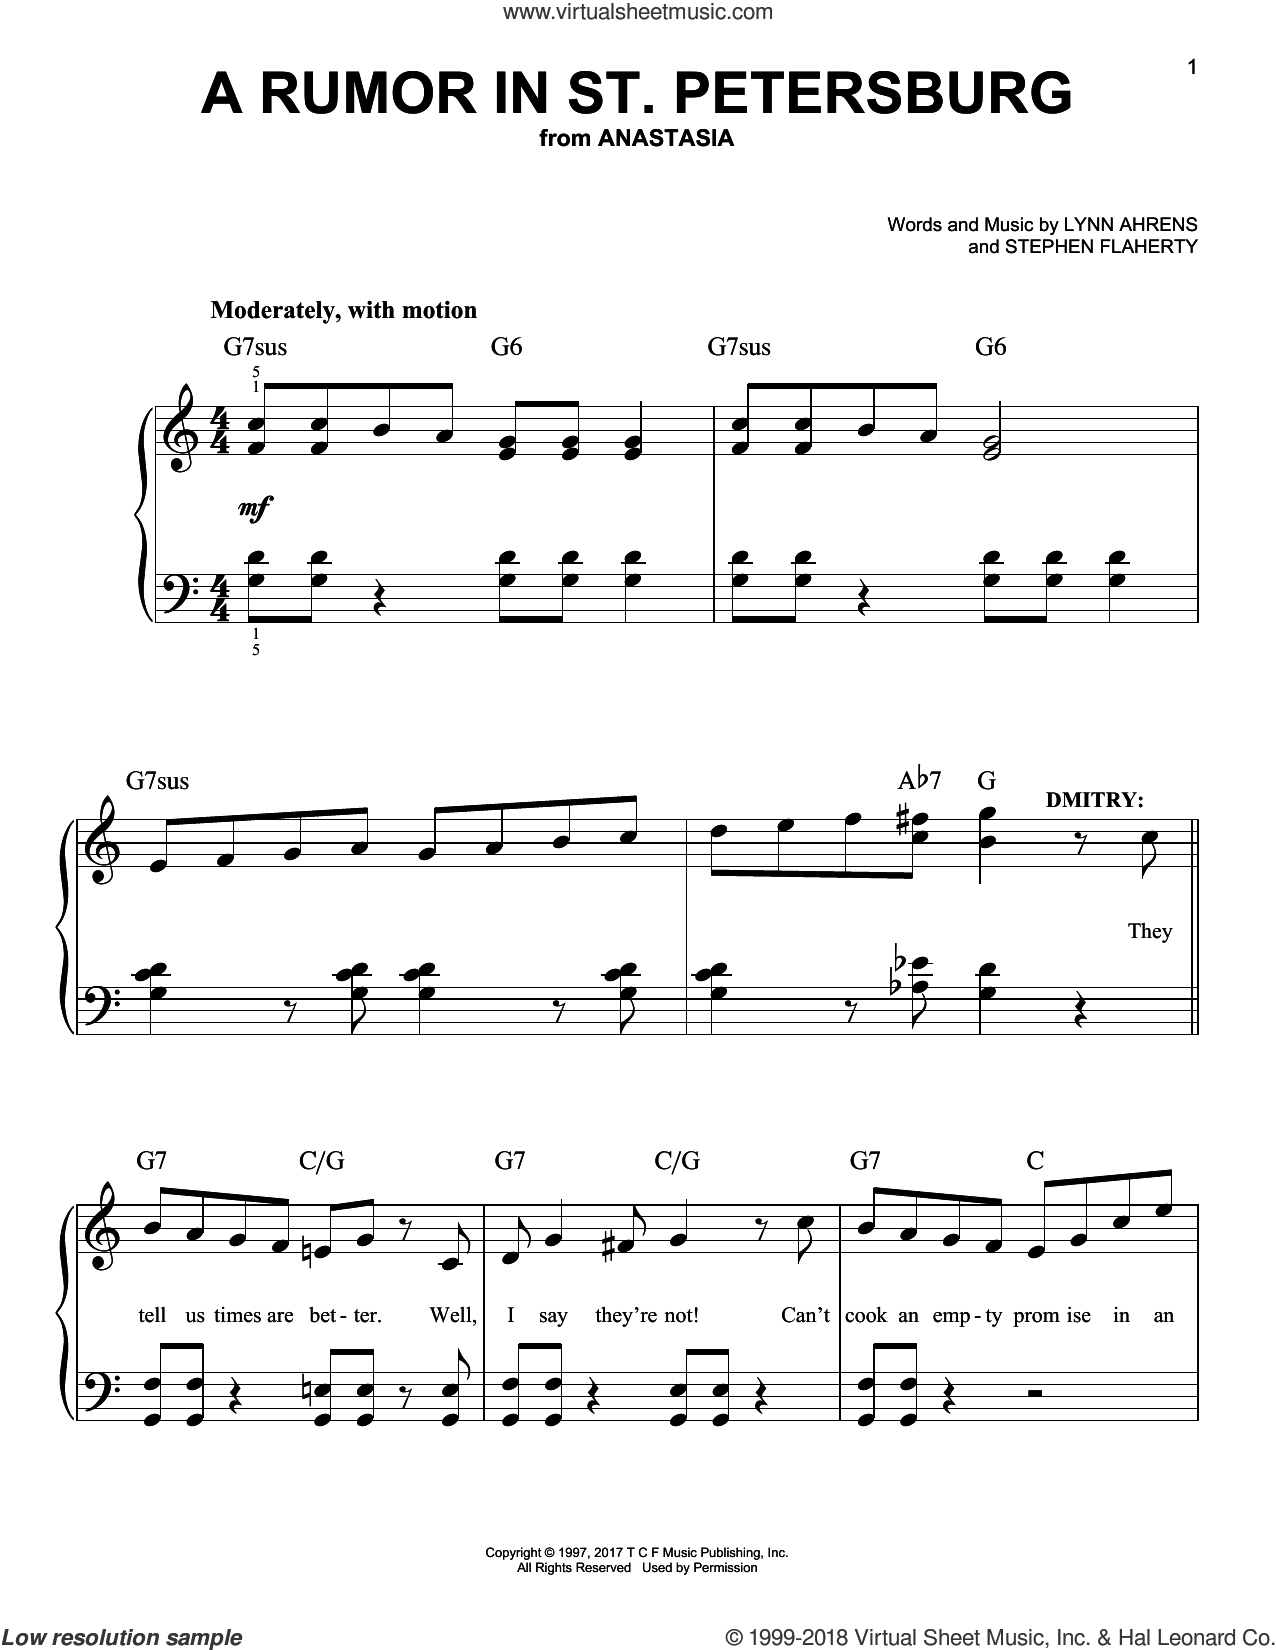 A Rumor In St. Petersburg sheet music for piano solo by Stephen Flaherty and Lynn Ahrens, easy skill level